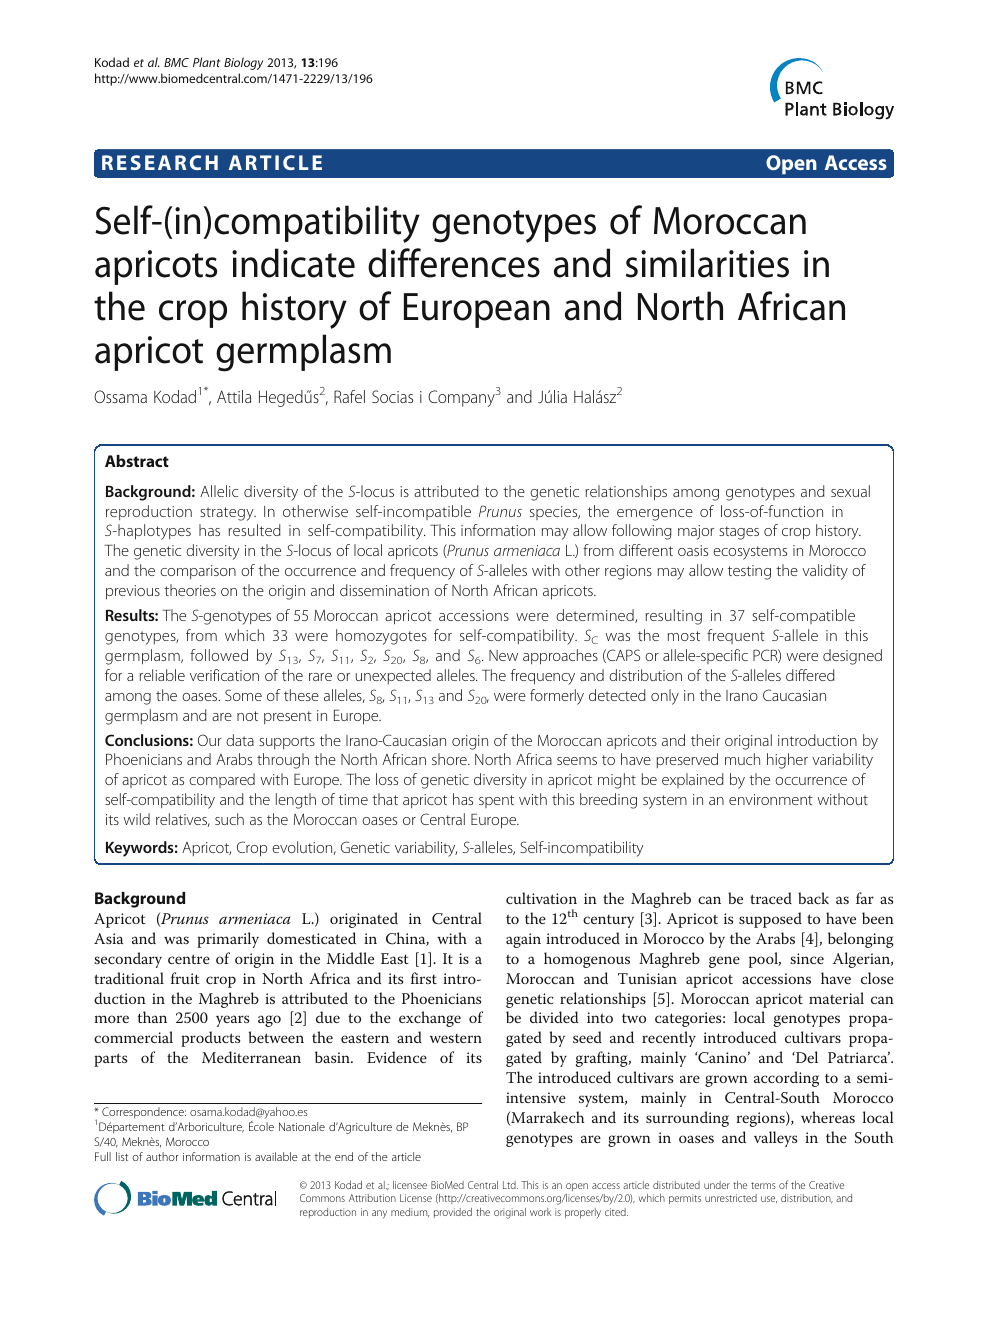 Self-(in)compatibility genotypes of Moroccan apricots